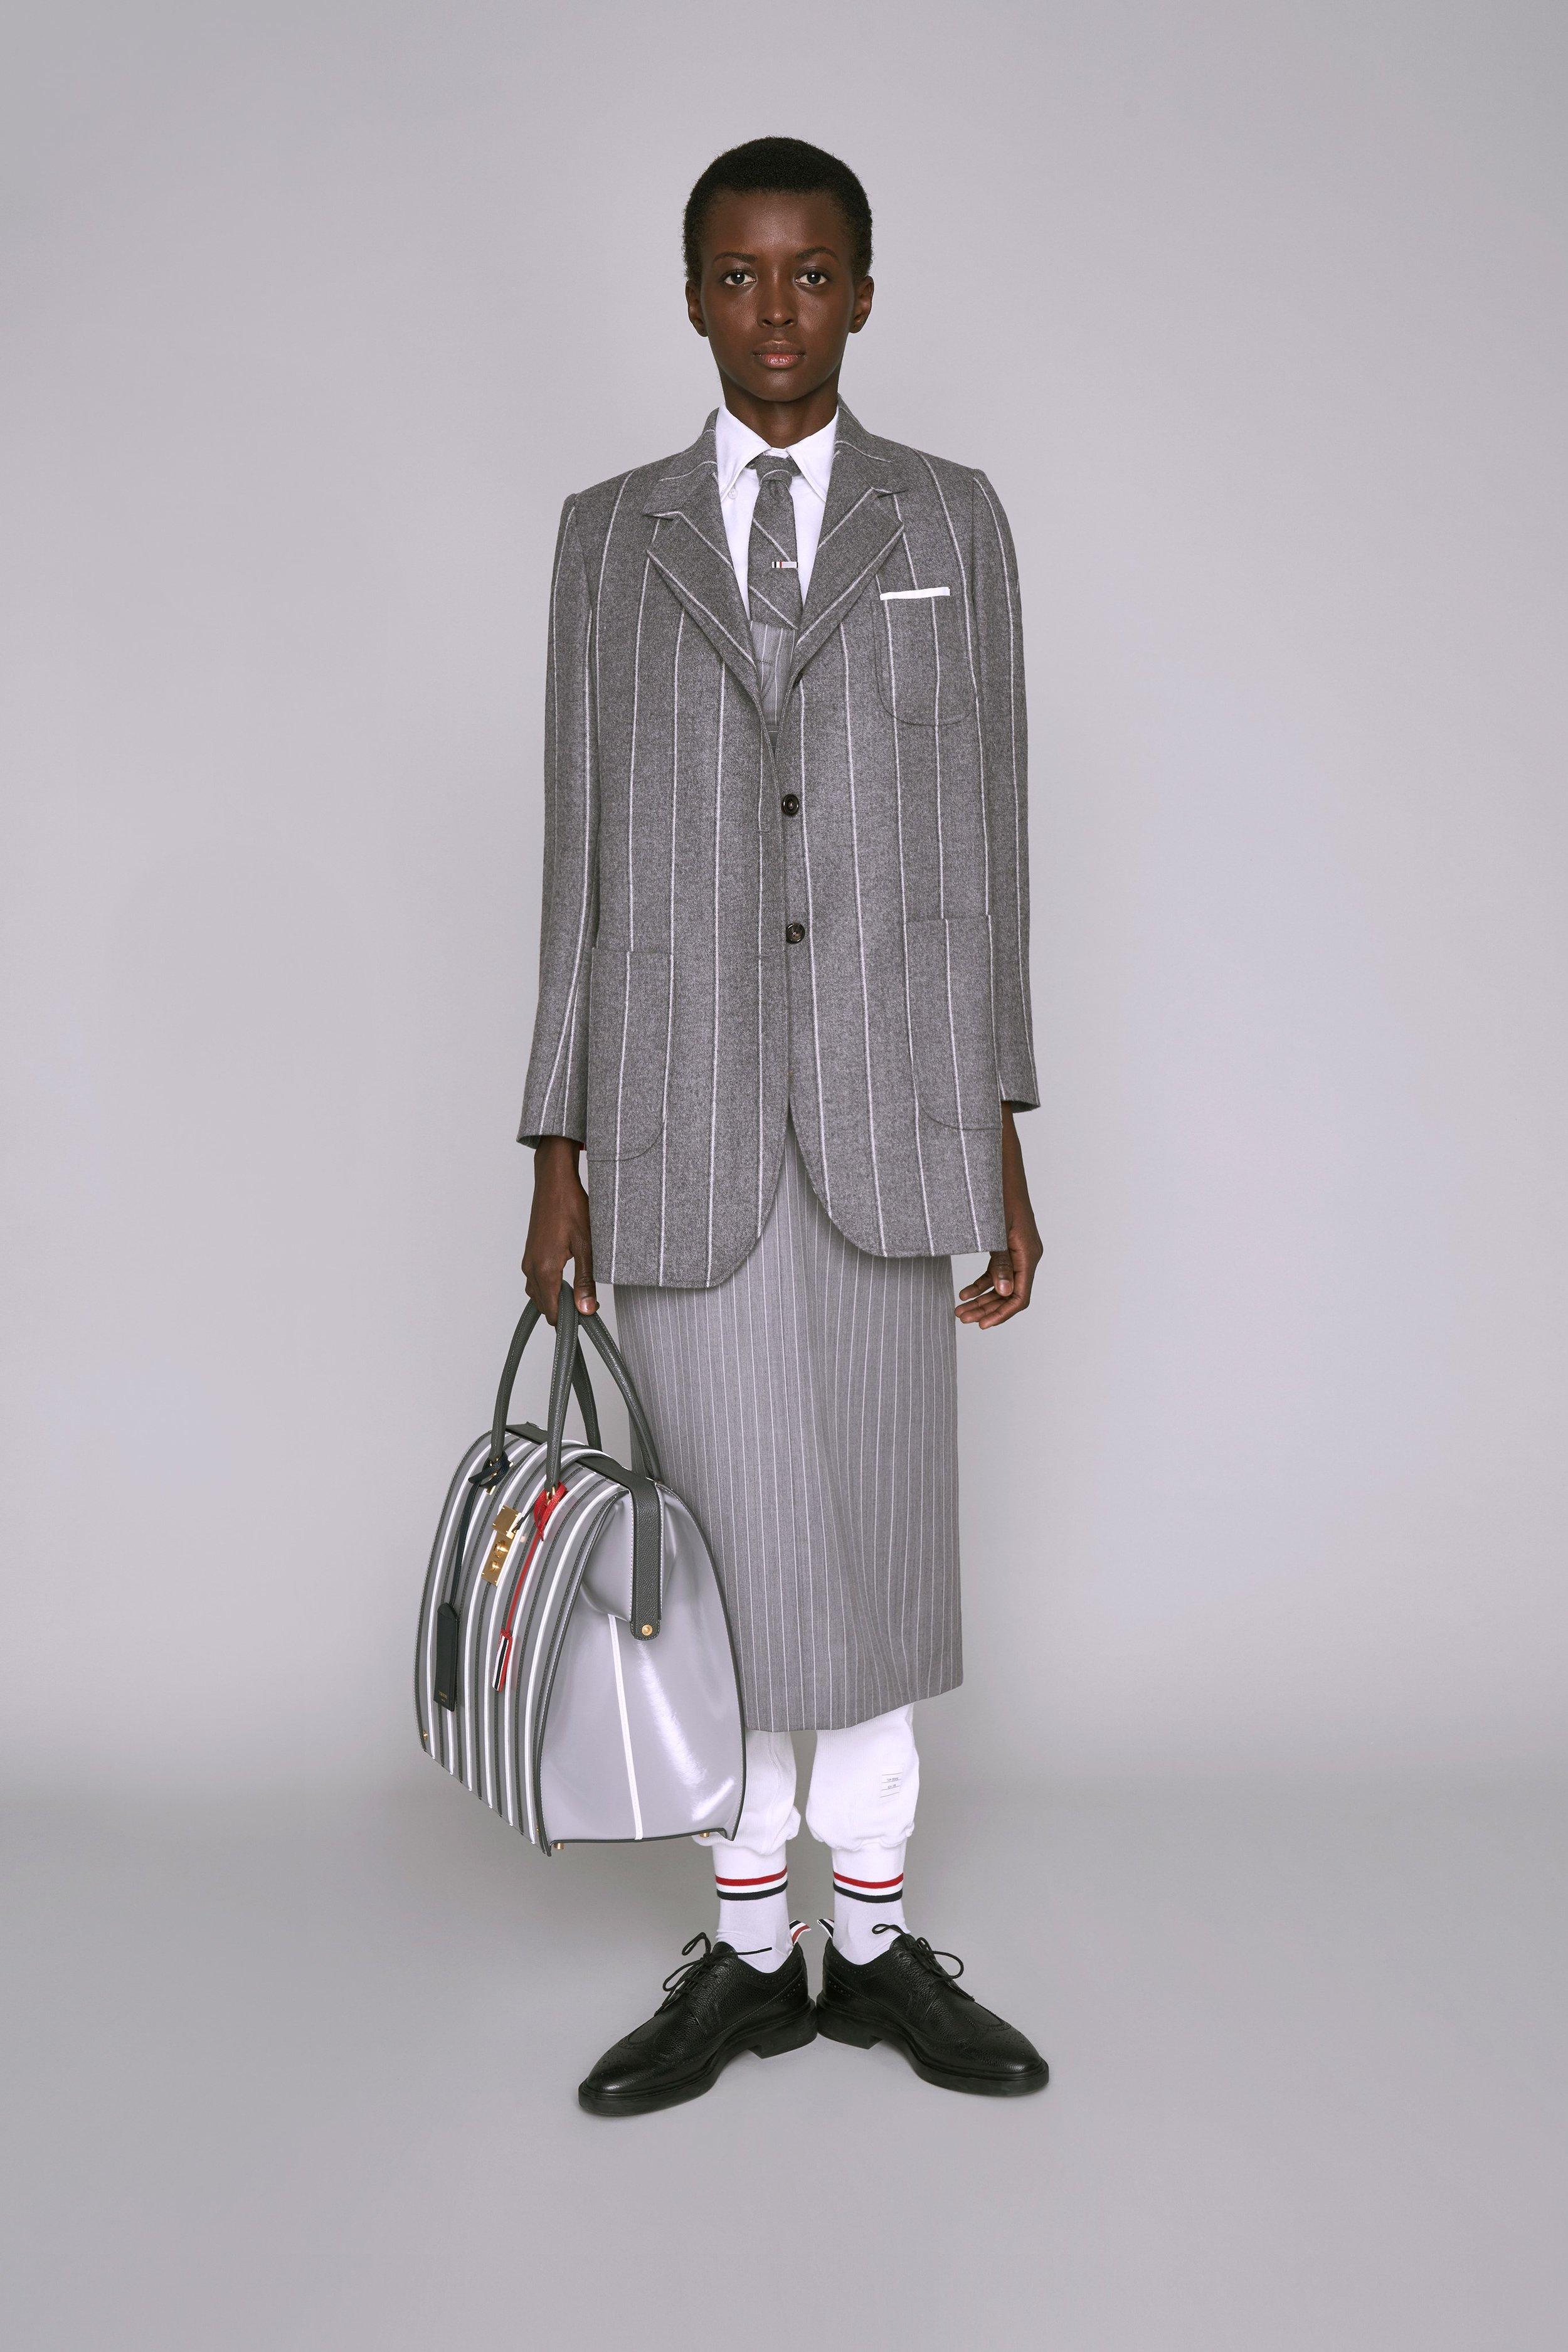 00004-thom-browne-paris-pre-fall-19.jpg